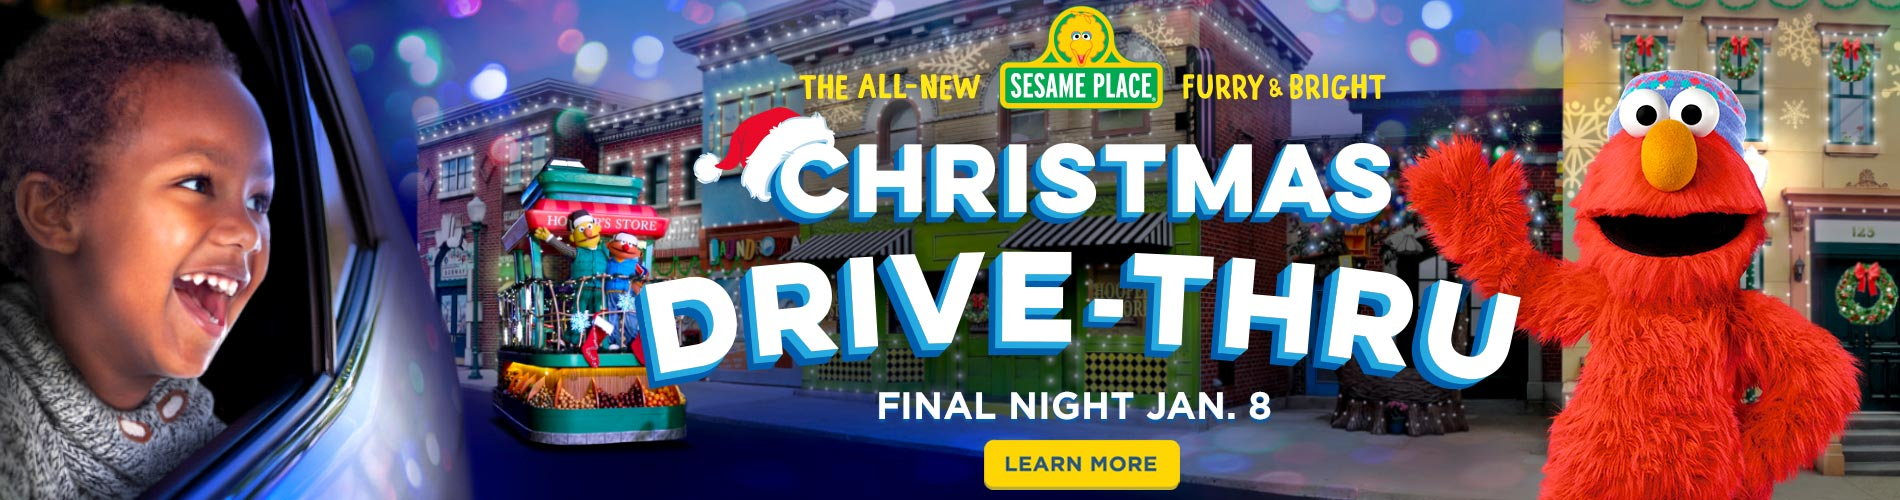 The All New Furry and Bright Christmas Drive Thru at Sesame Place